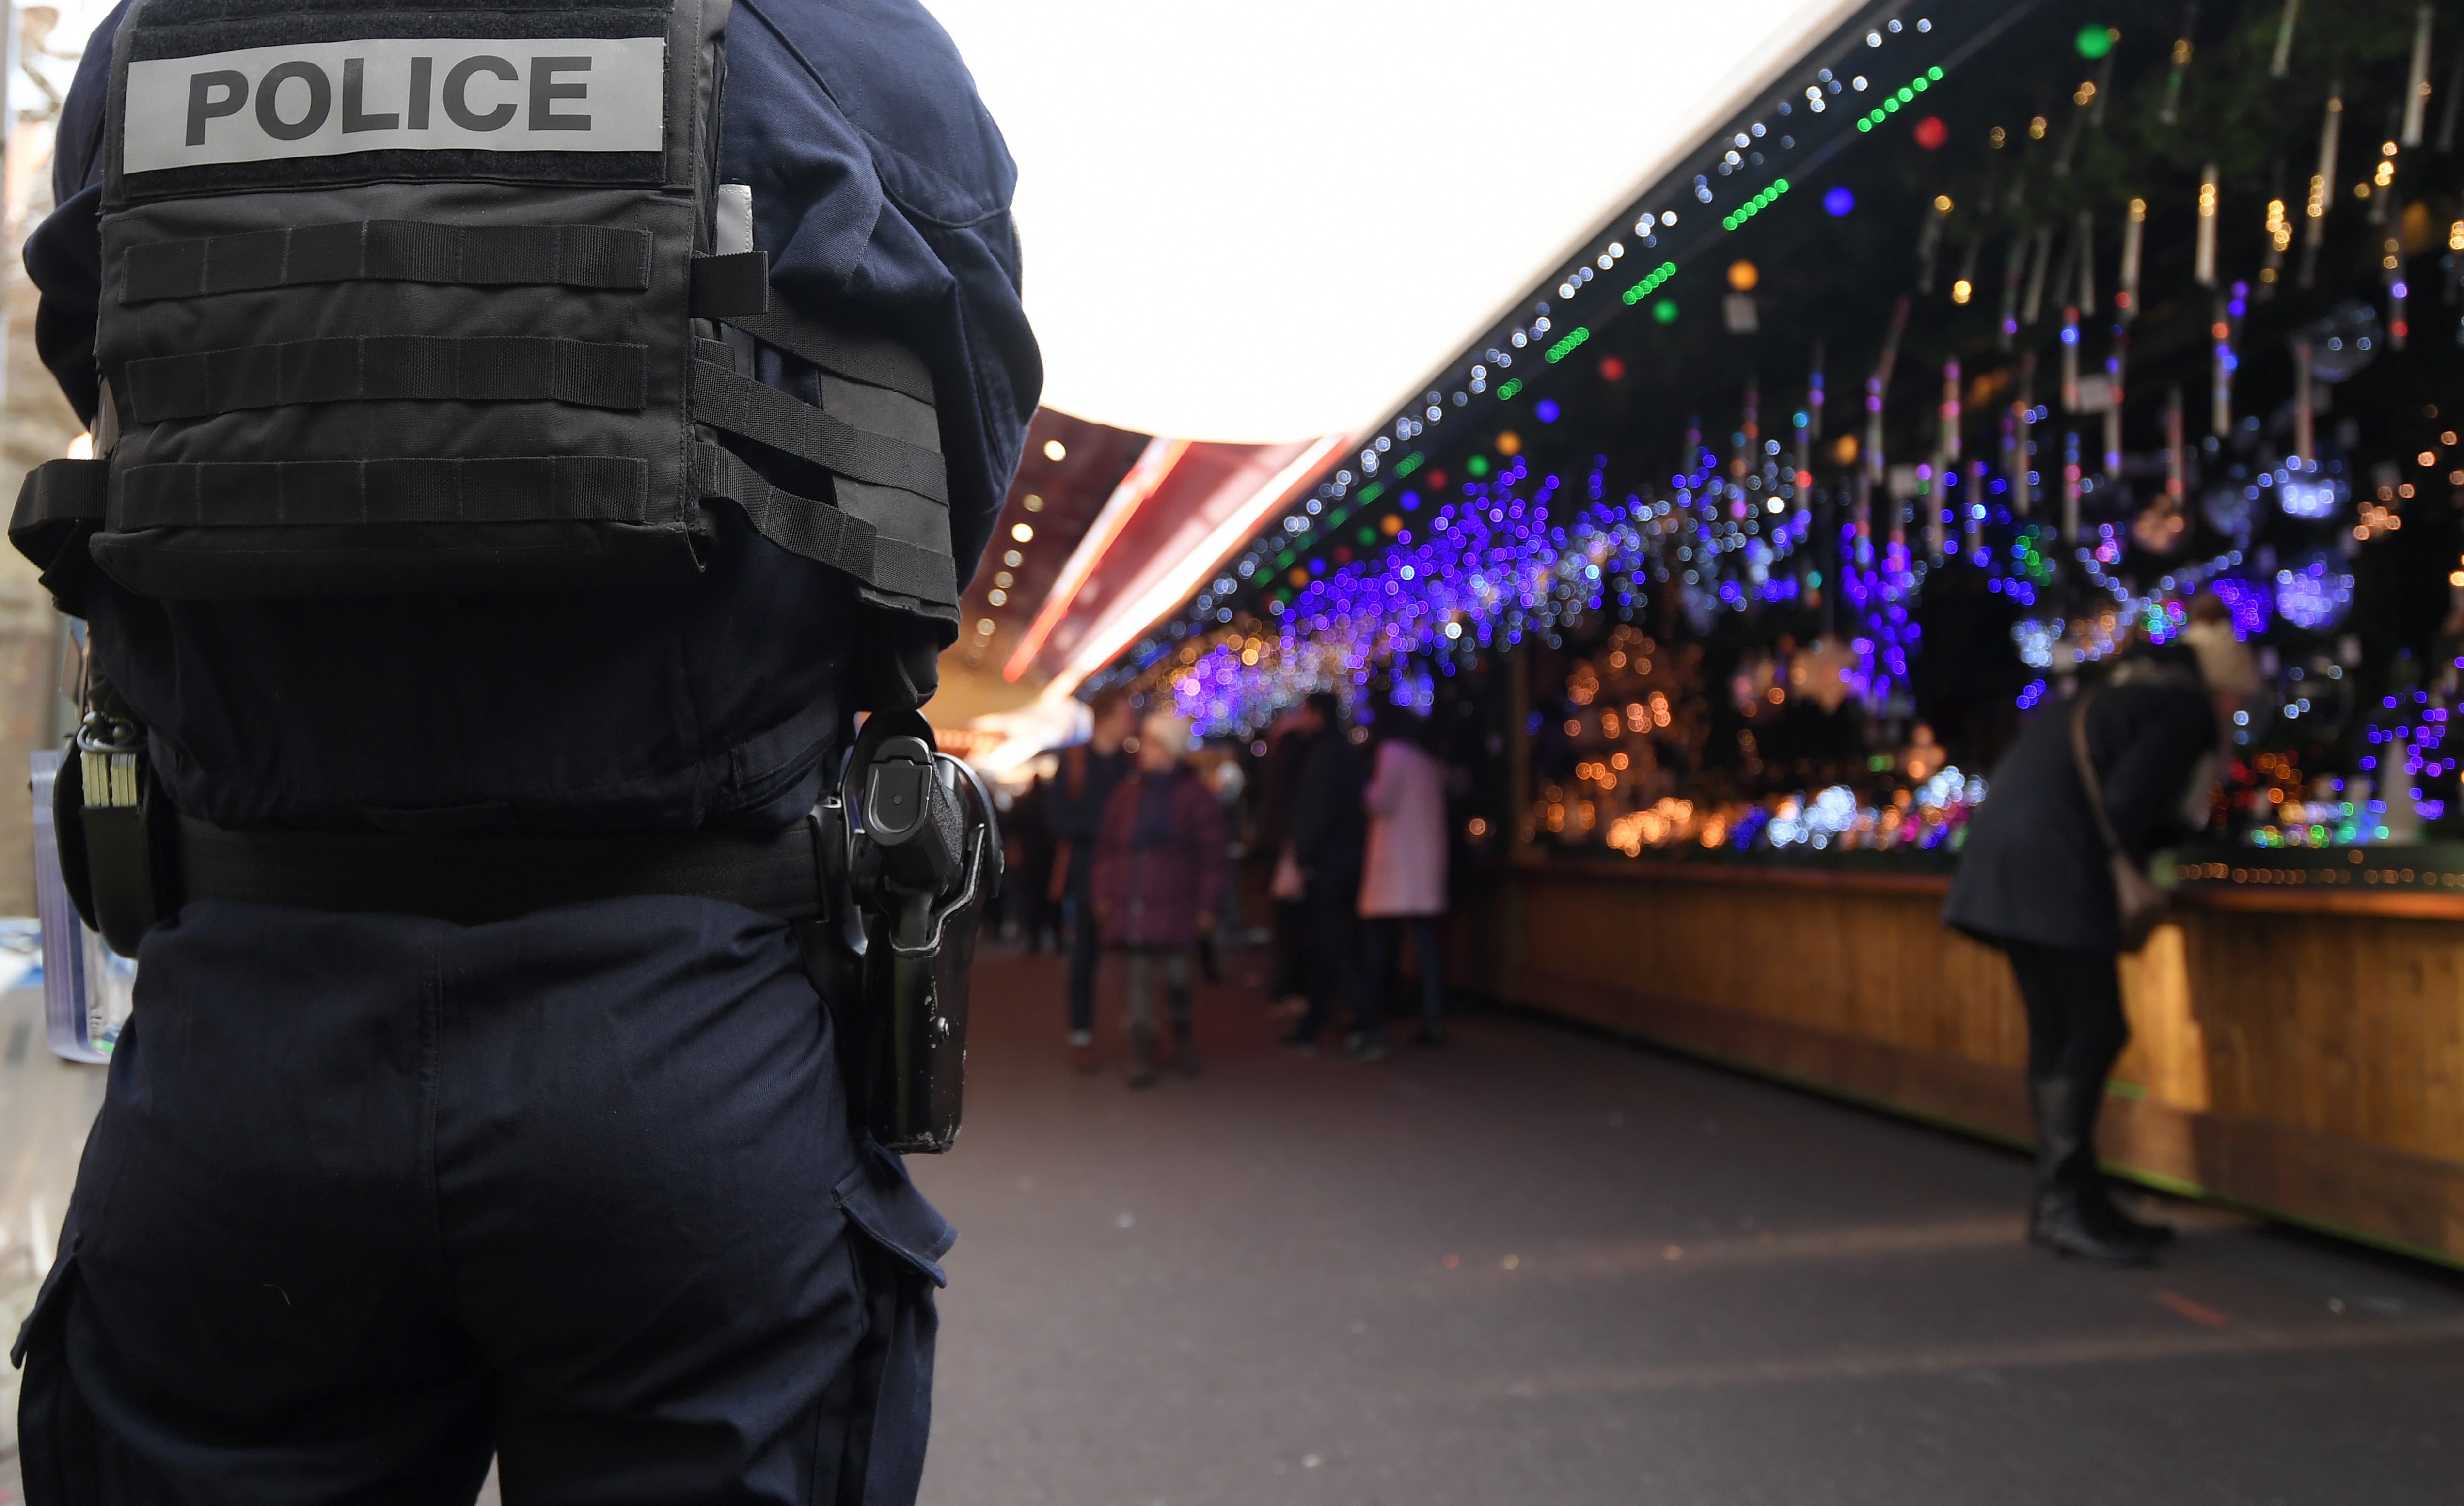 A police officer patrols on the Christmas market in Strasbourg, France, on Dec. 20, 2016.